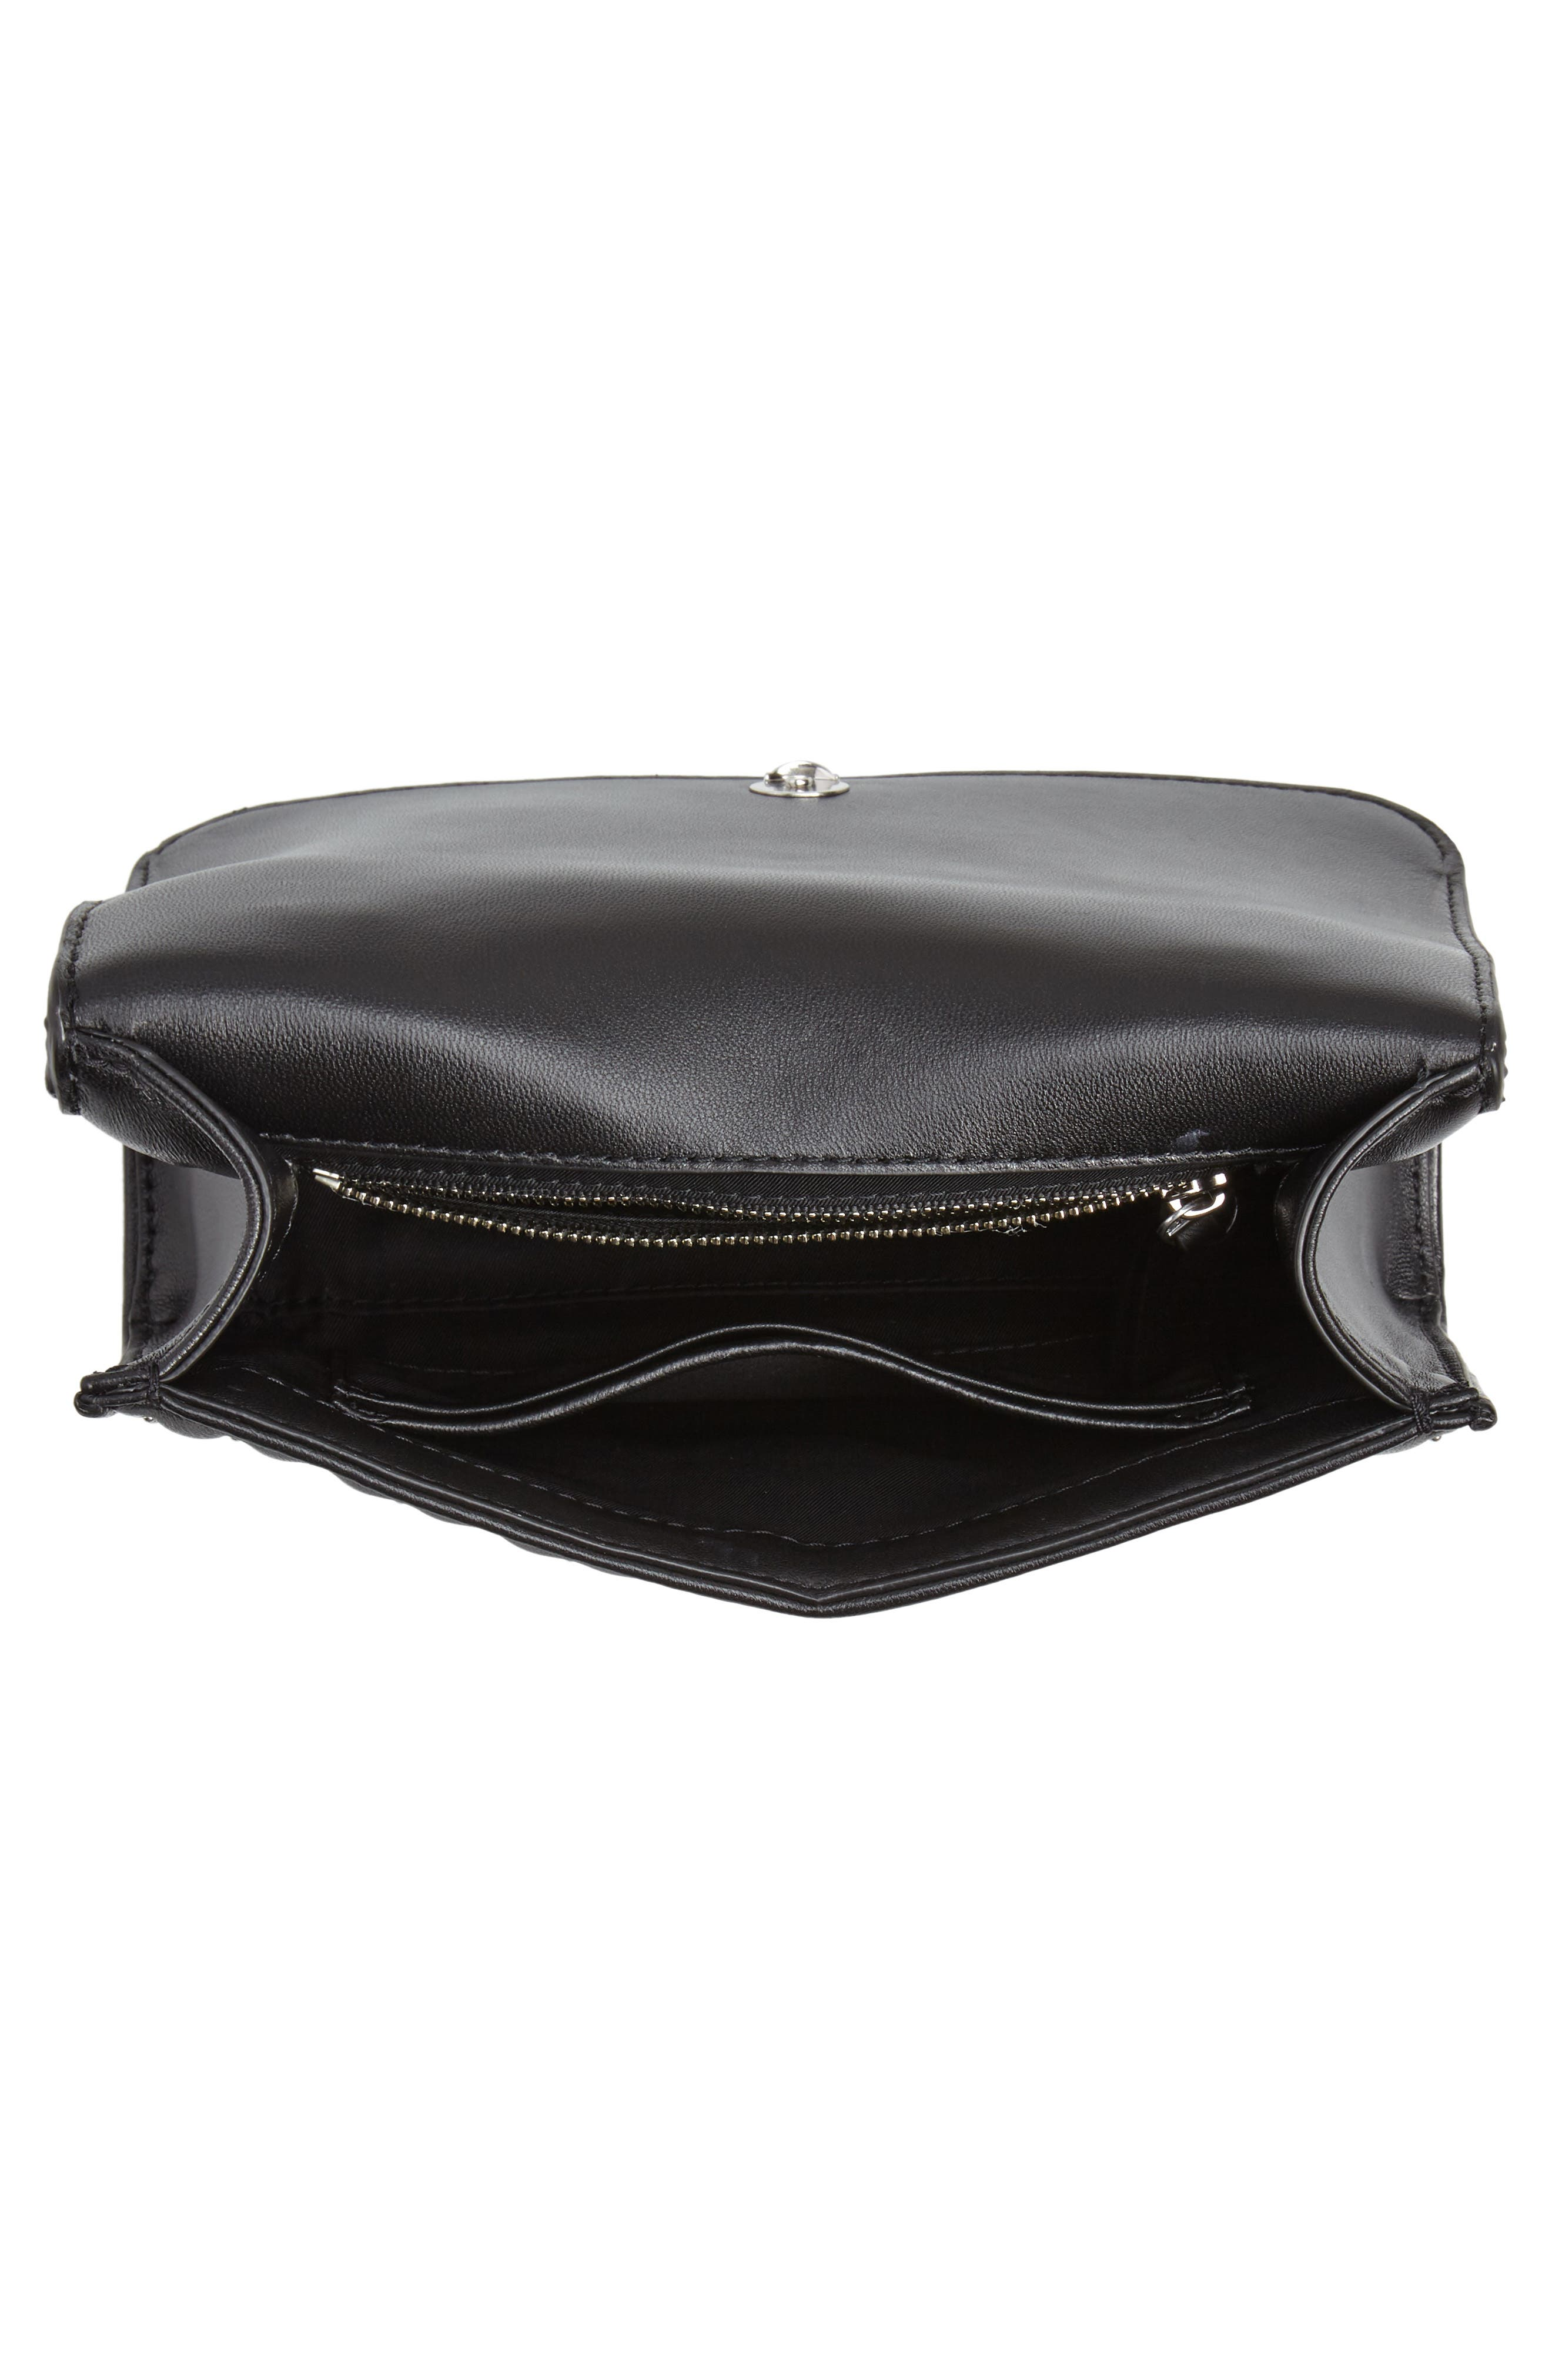 TORY BURCH,                             Small Fleming Studded Leather Convertible Shoulder Bag,                             Alternate thumbnail 4, color,                             BLACK / SILVER